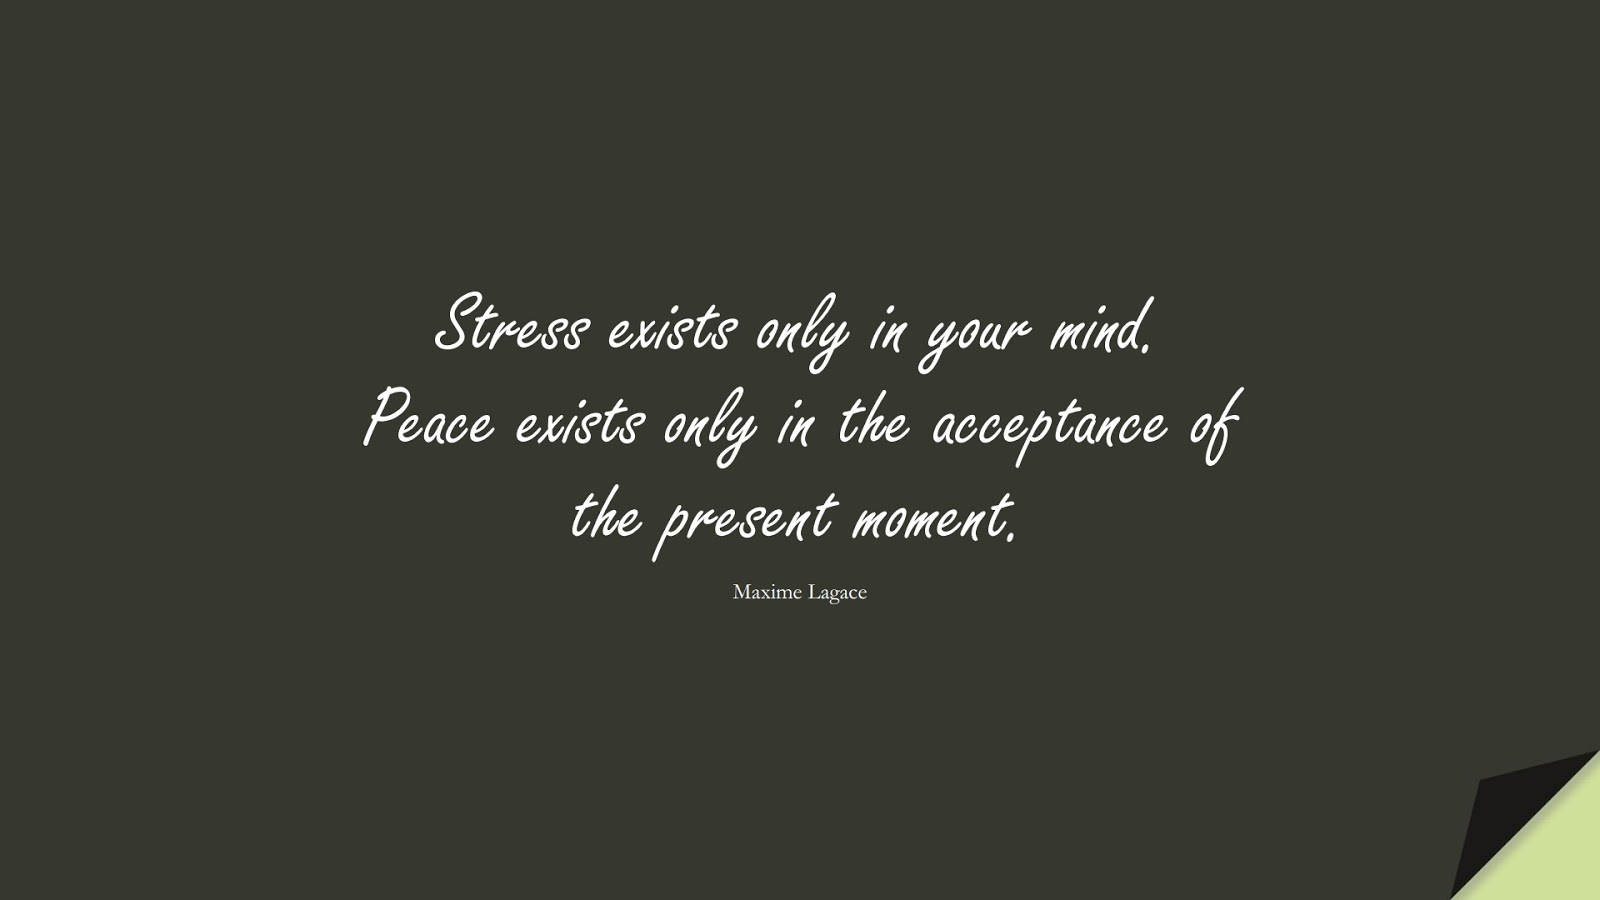 Stress exists only in your mind. Peace exists only in the acceptance of the present moment. (Maxime Lagace);  #StressQuotes